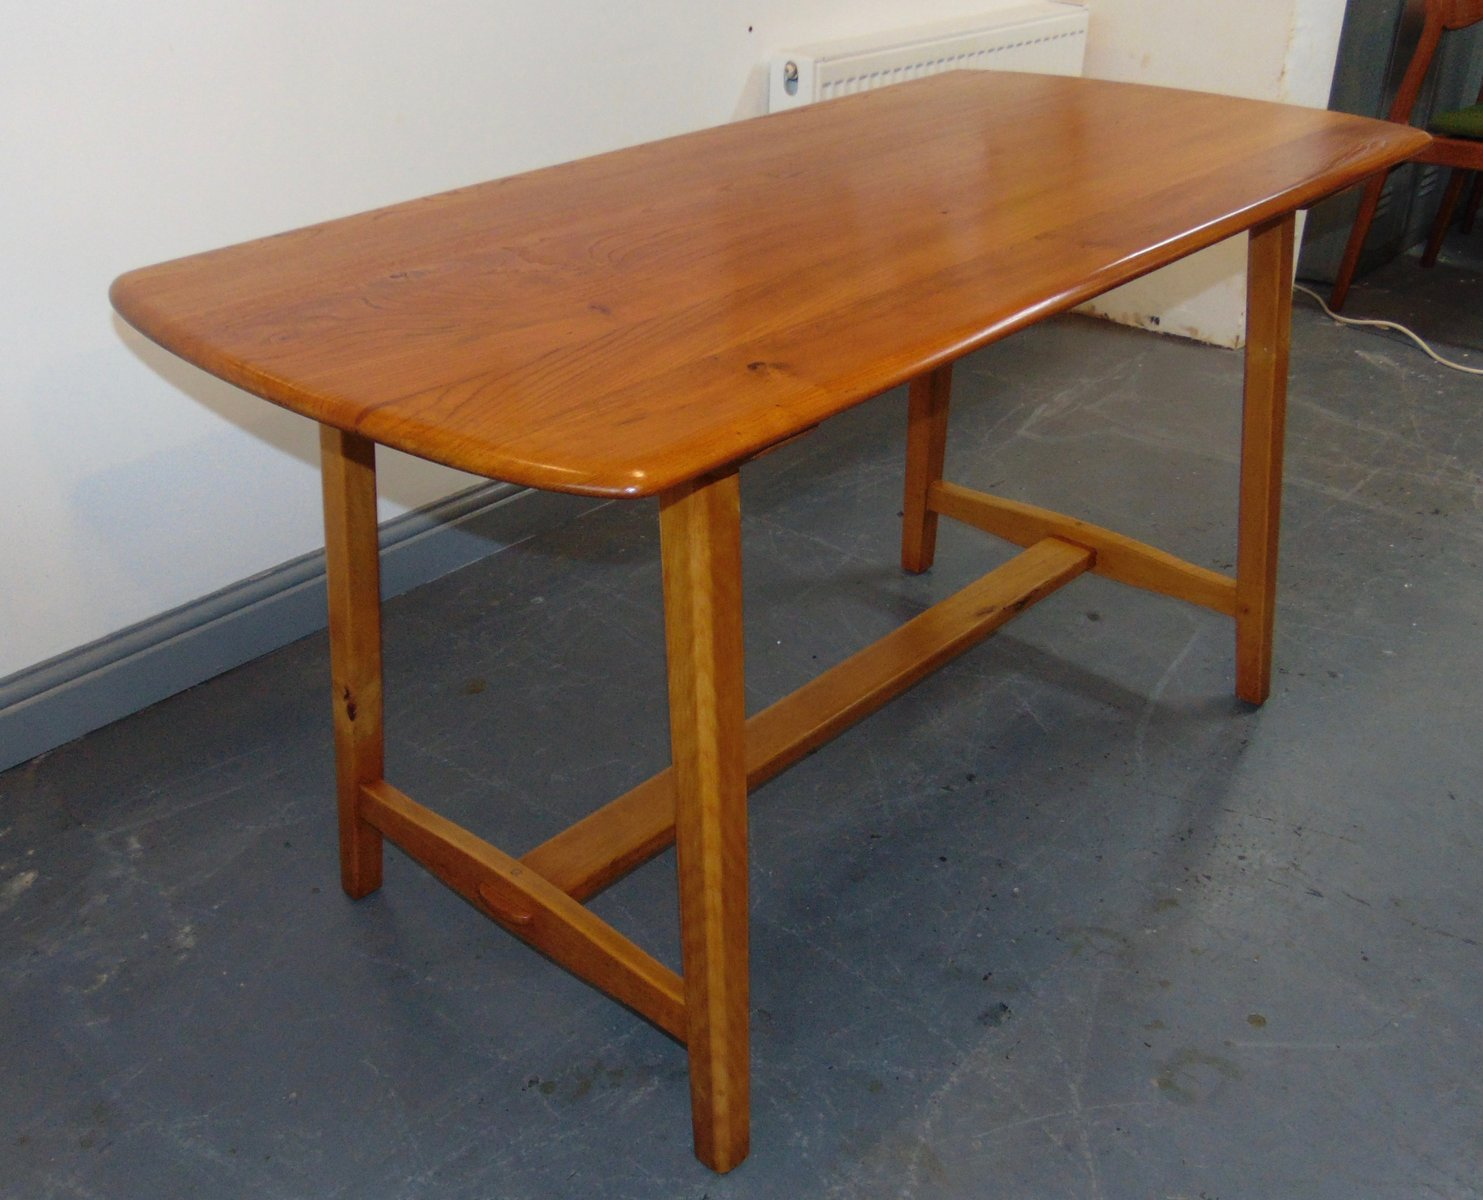 Elm Trestle Dining Table From Ercol,1950s